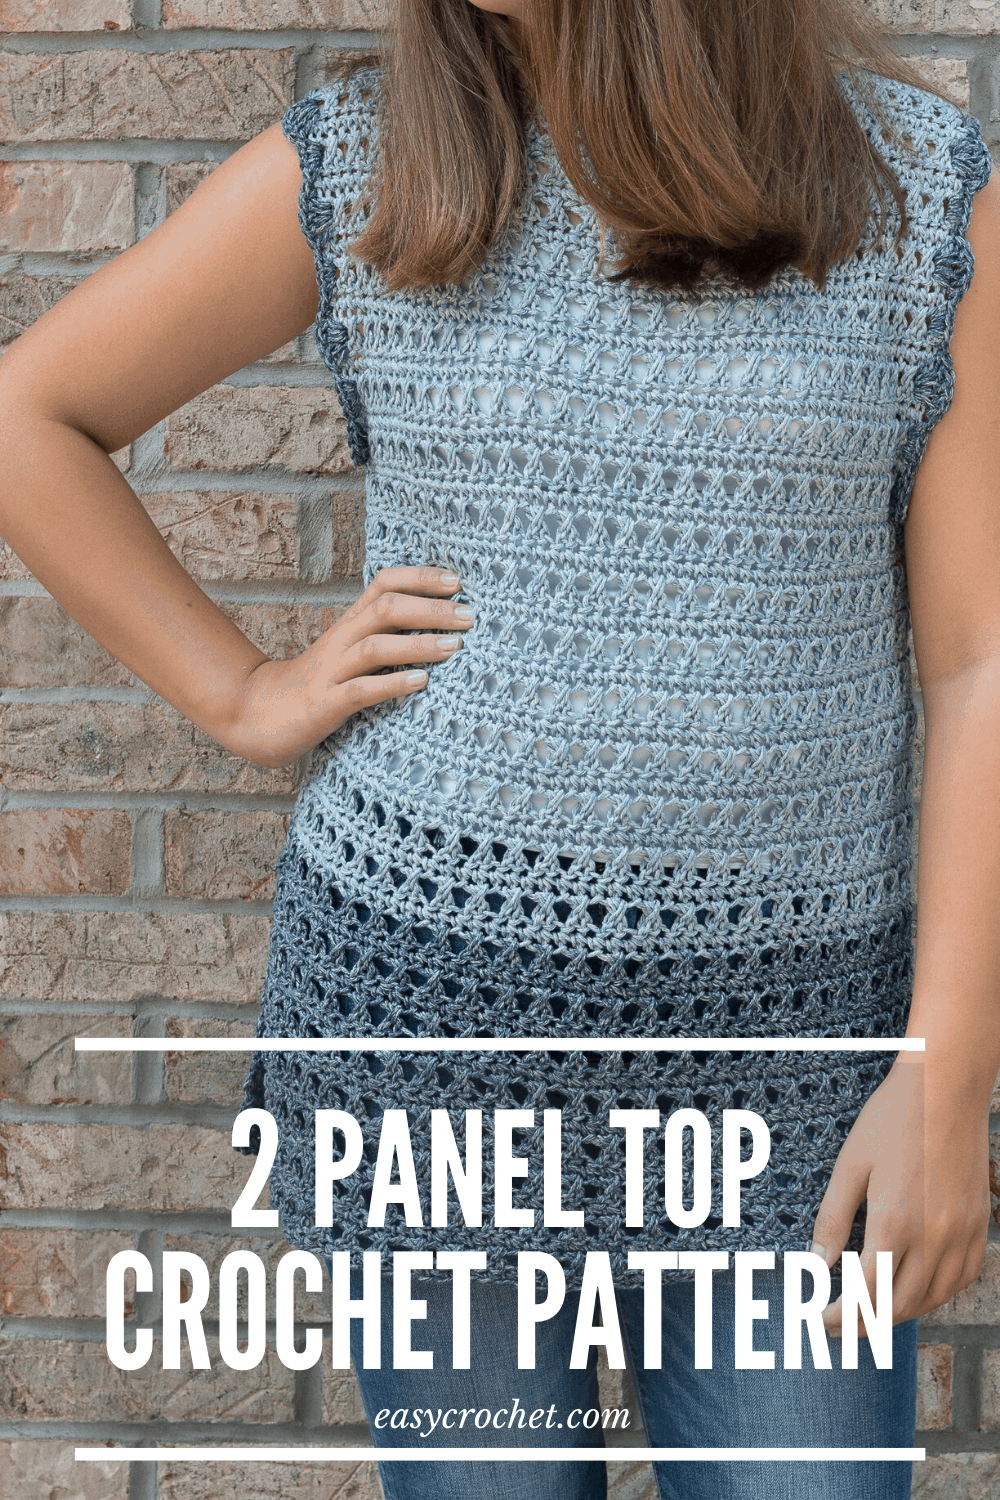 Free Crochet Top Pattern in SIX different sizes! Find the pattern at easycrochet.com #crochettop #freecrochetpattern #crochet #rescuedpawdesigns via @easycrochetcom